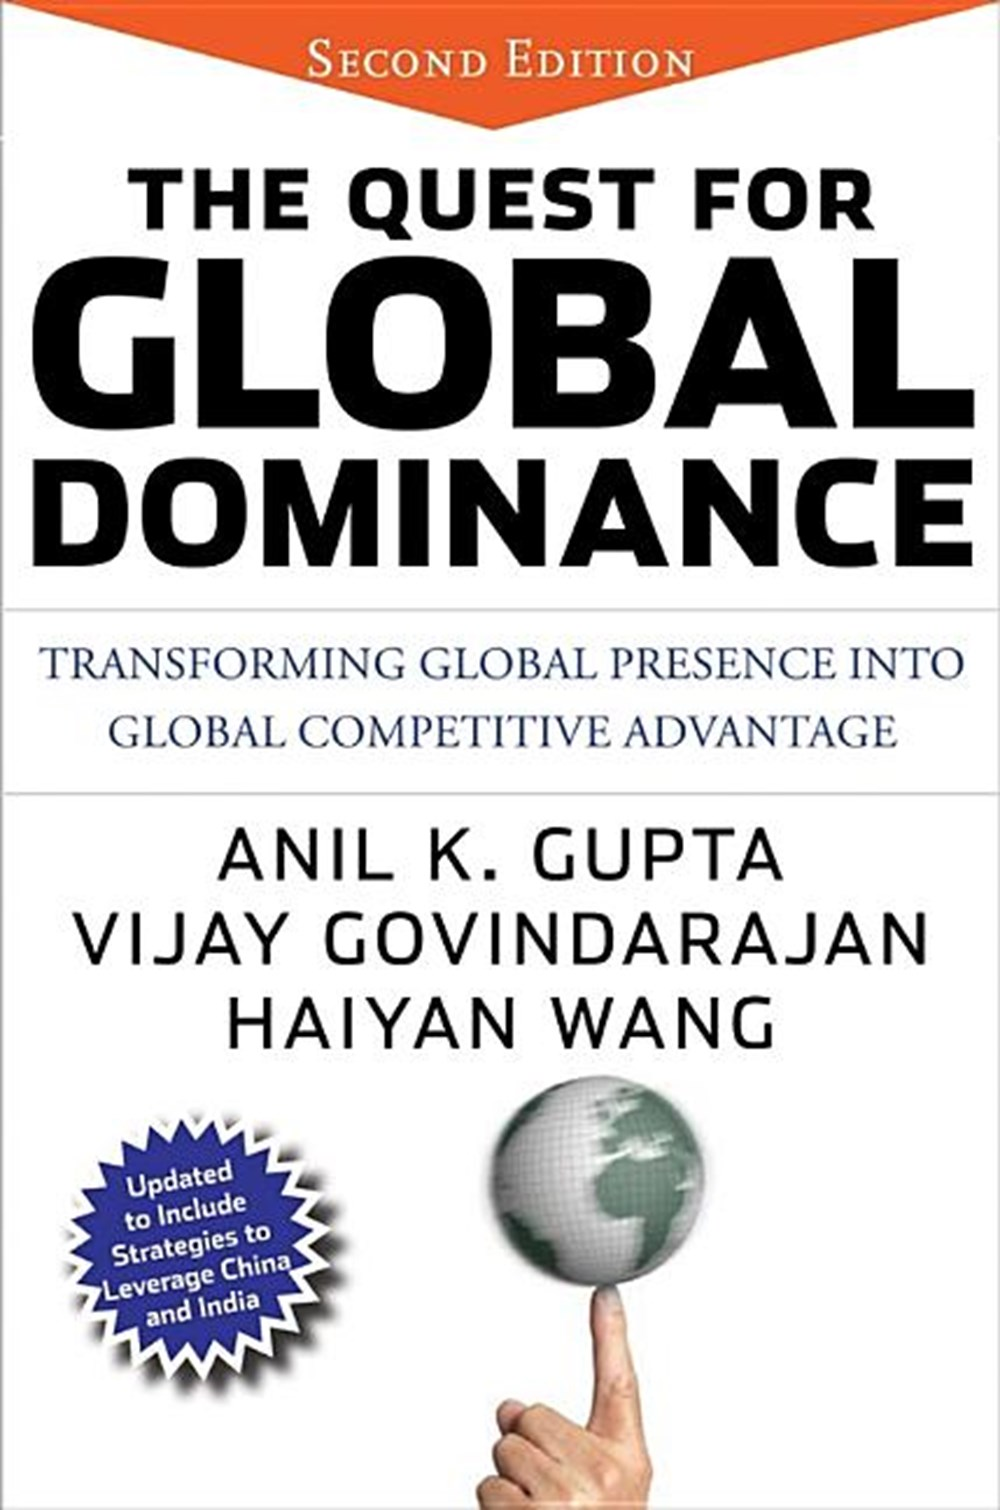 Quest for Global Dominance Transforming Global Presence Into Global Competitive Advantage